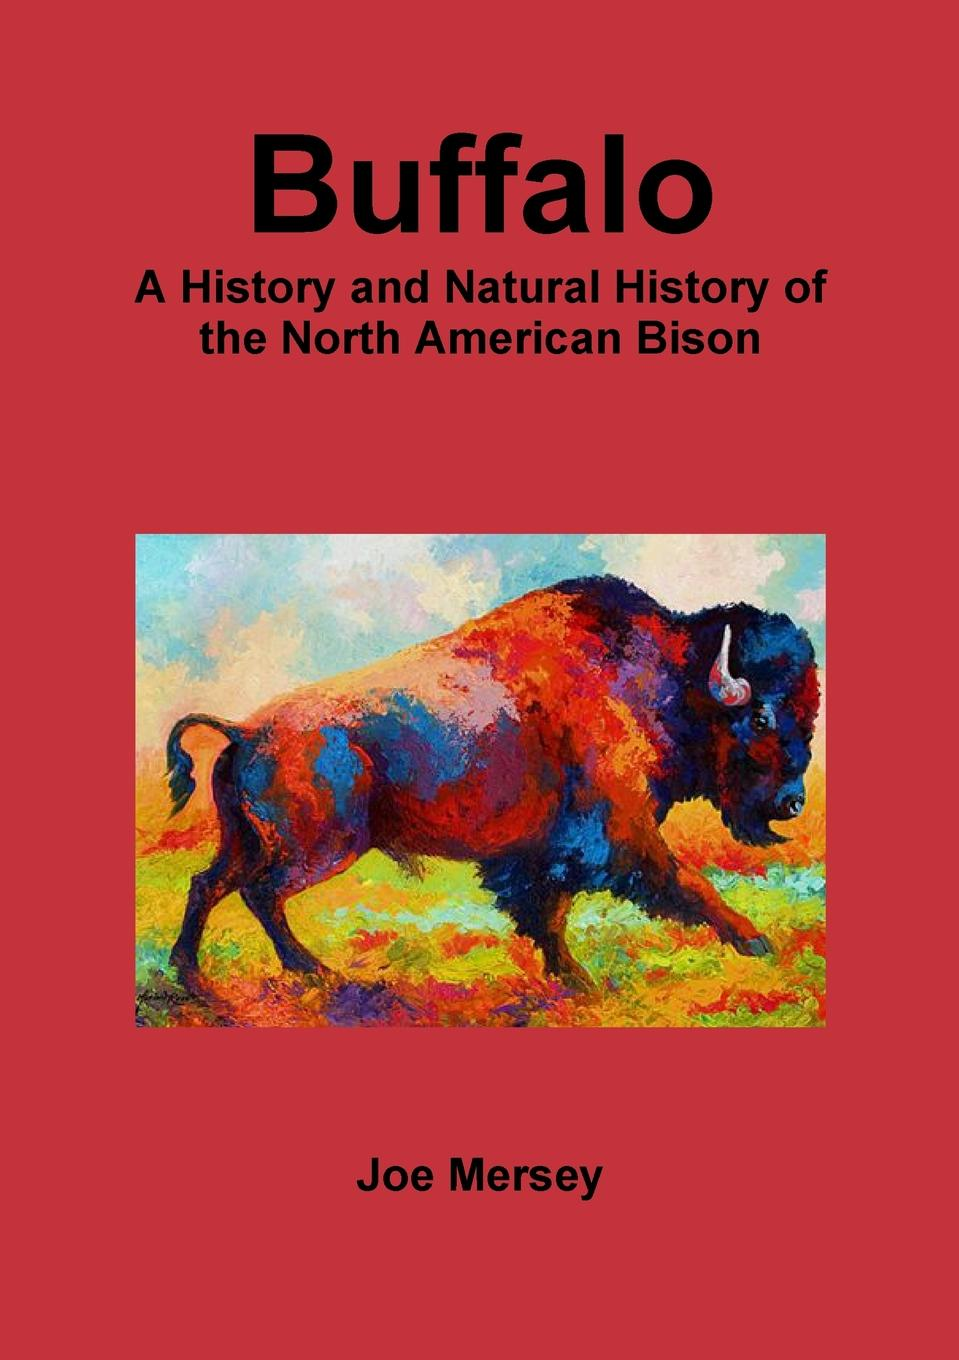 цены на Joe Mersey Buffalo. A History and Natural History of the North American Bison  в интернет-магазинах